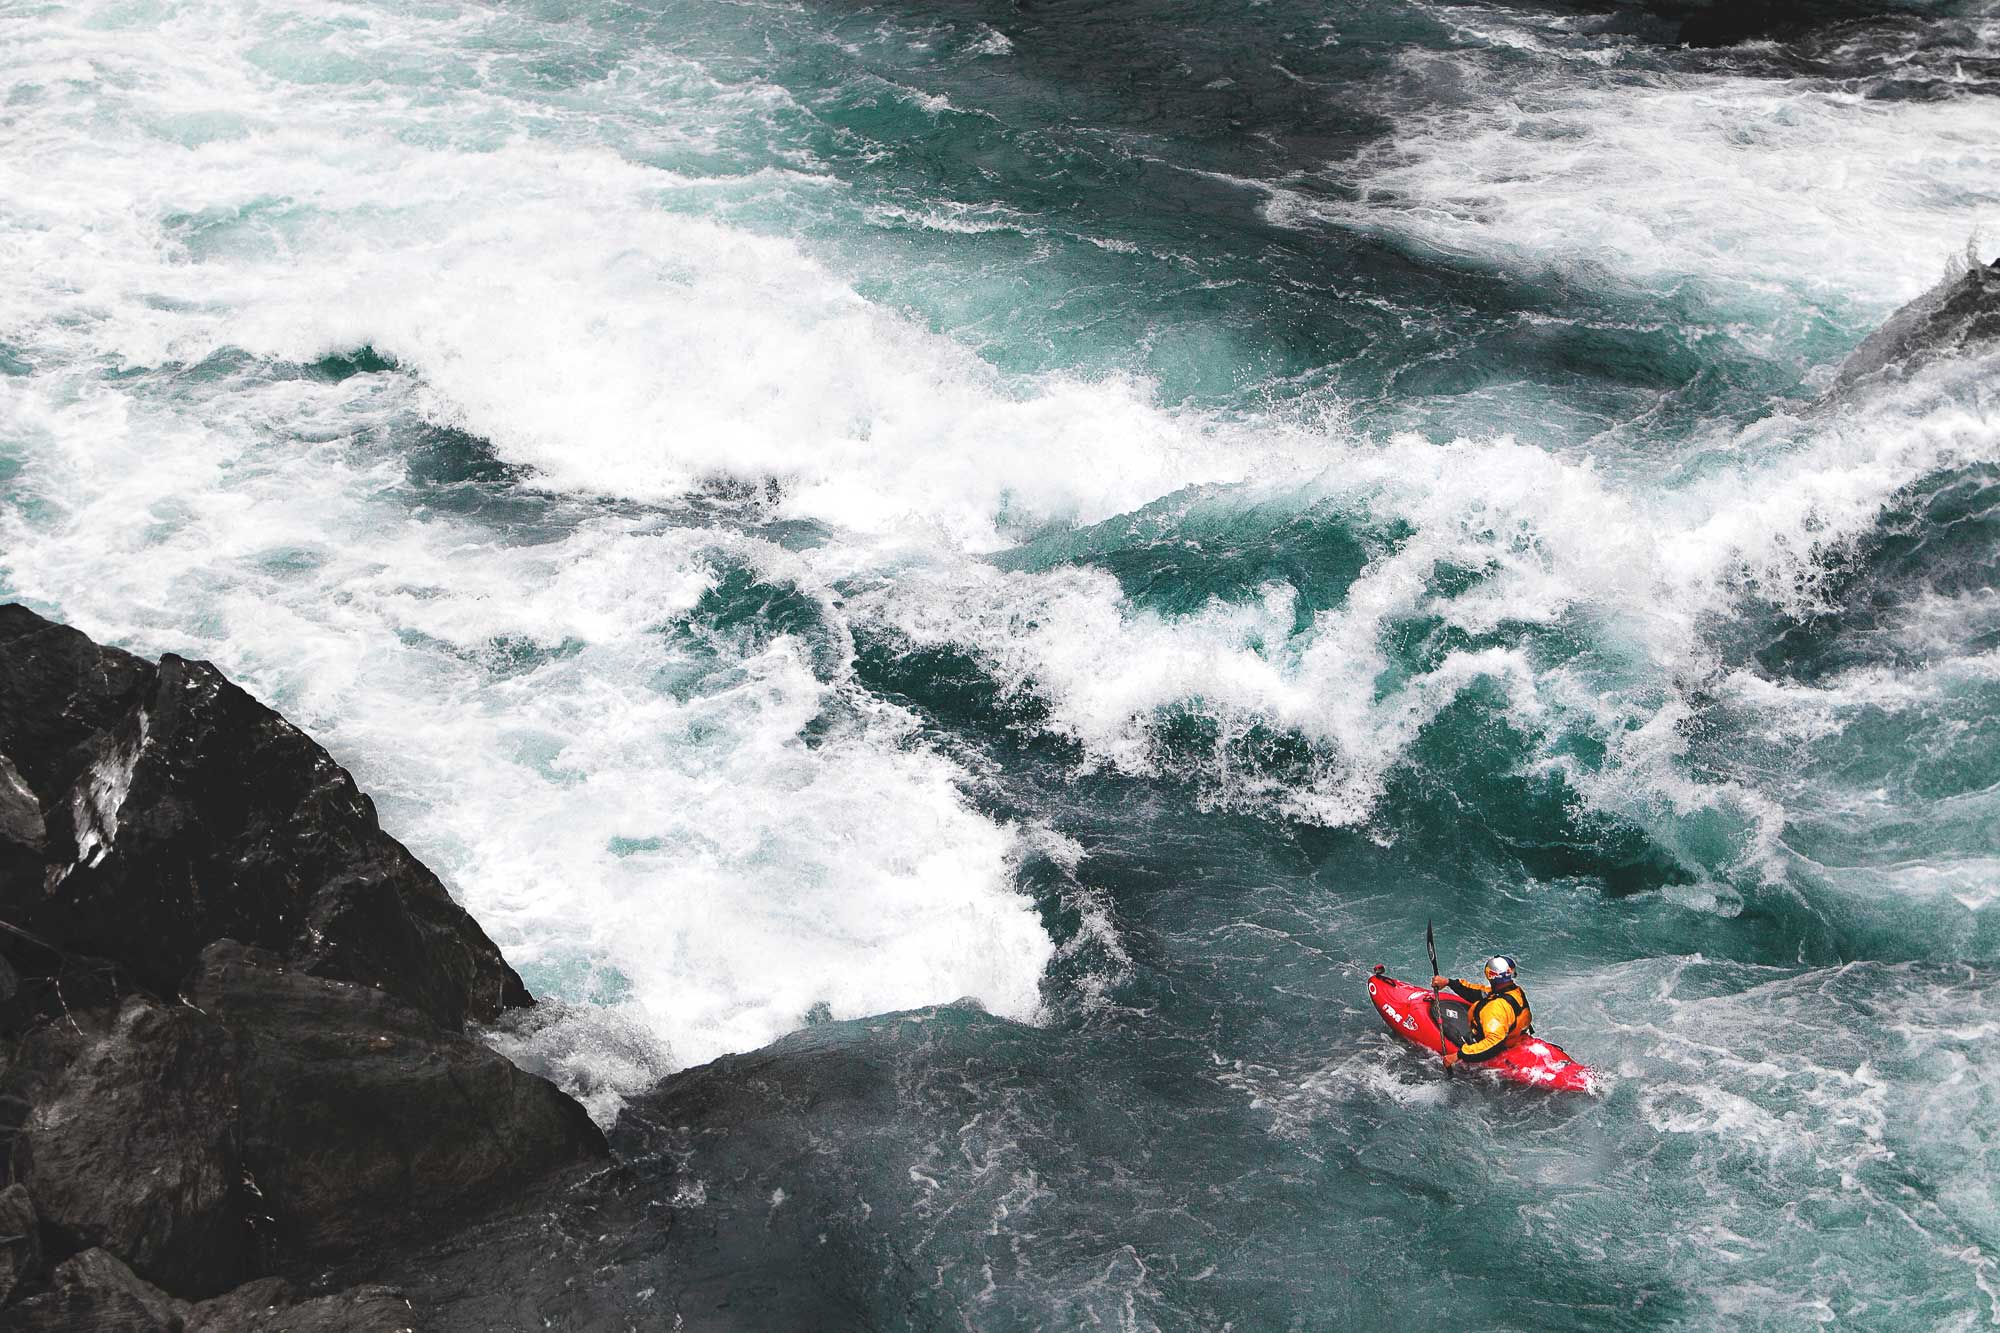 Red Bull Kayaker Ben Brown in Bennet's Bluff rapid near Queenstown